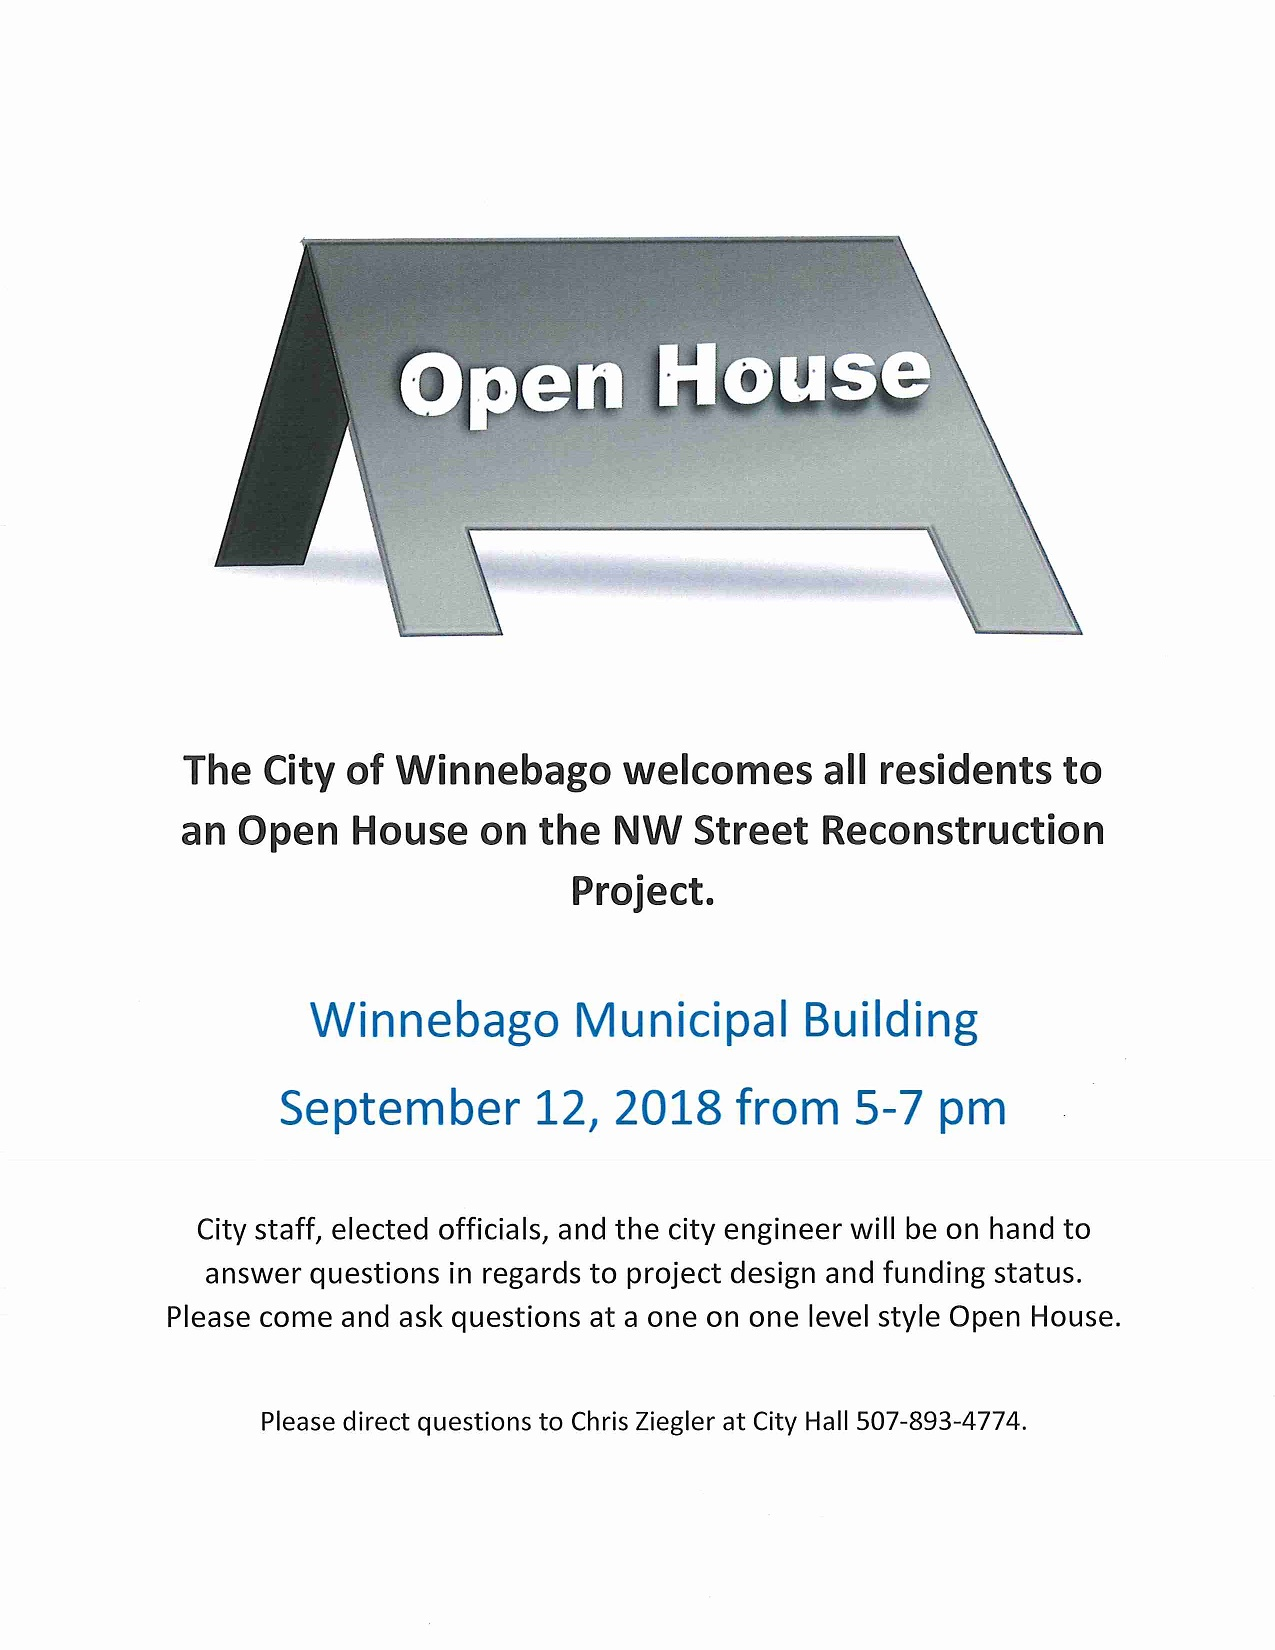 NW Area Public Hearing and Open House Sept 12